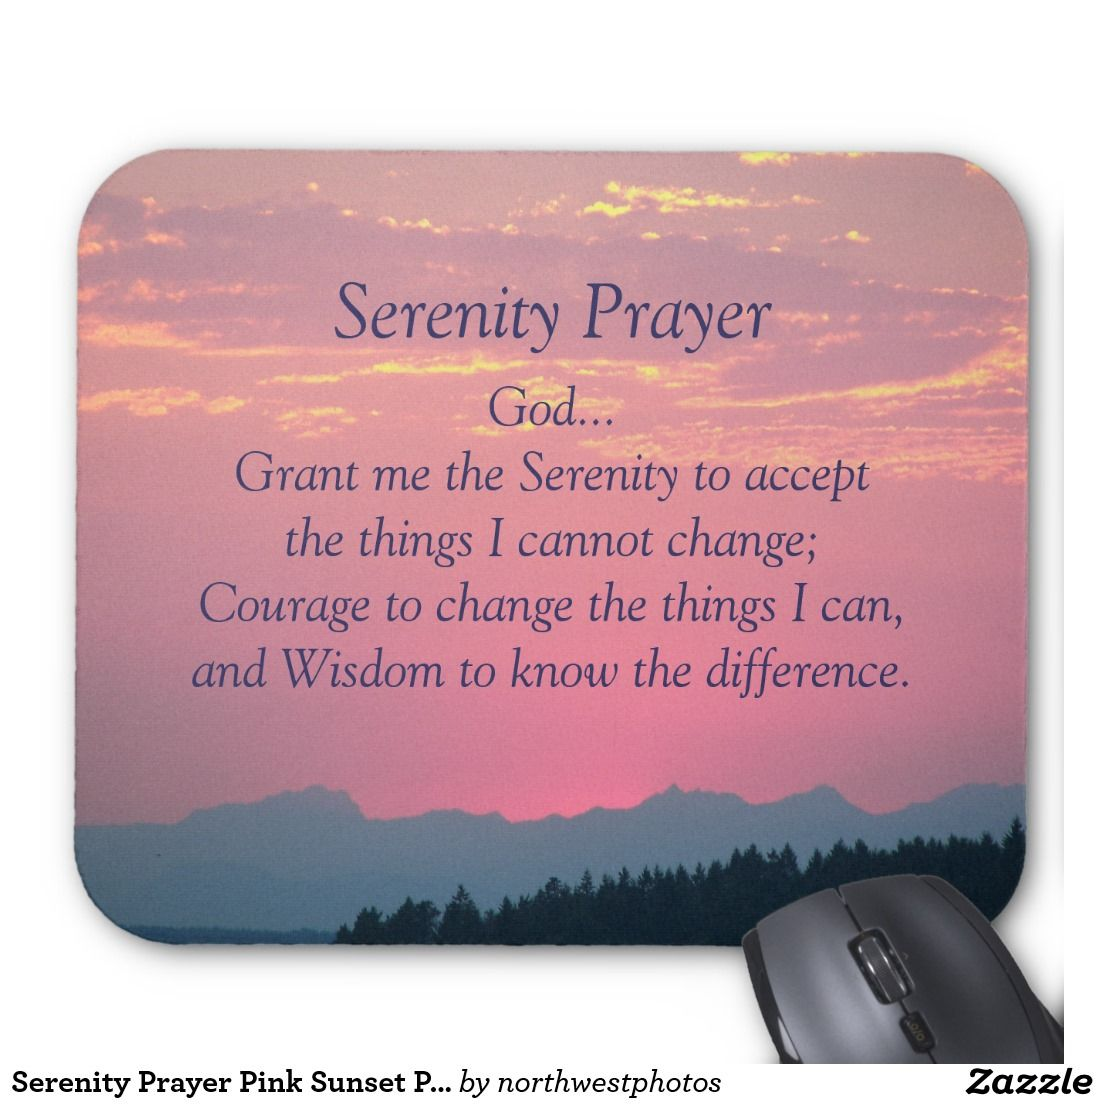 Serenity Prayer Pink Sunset Photo Mouse Pad